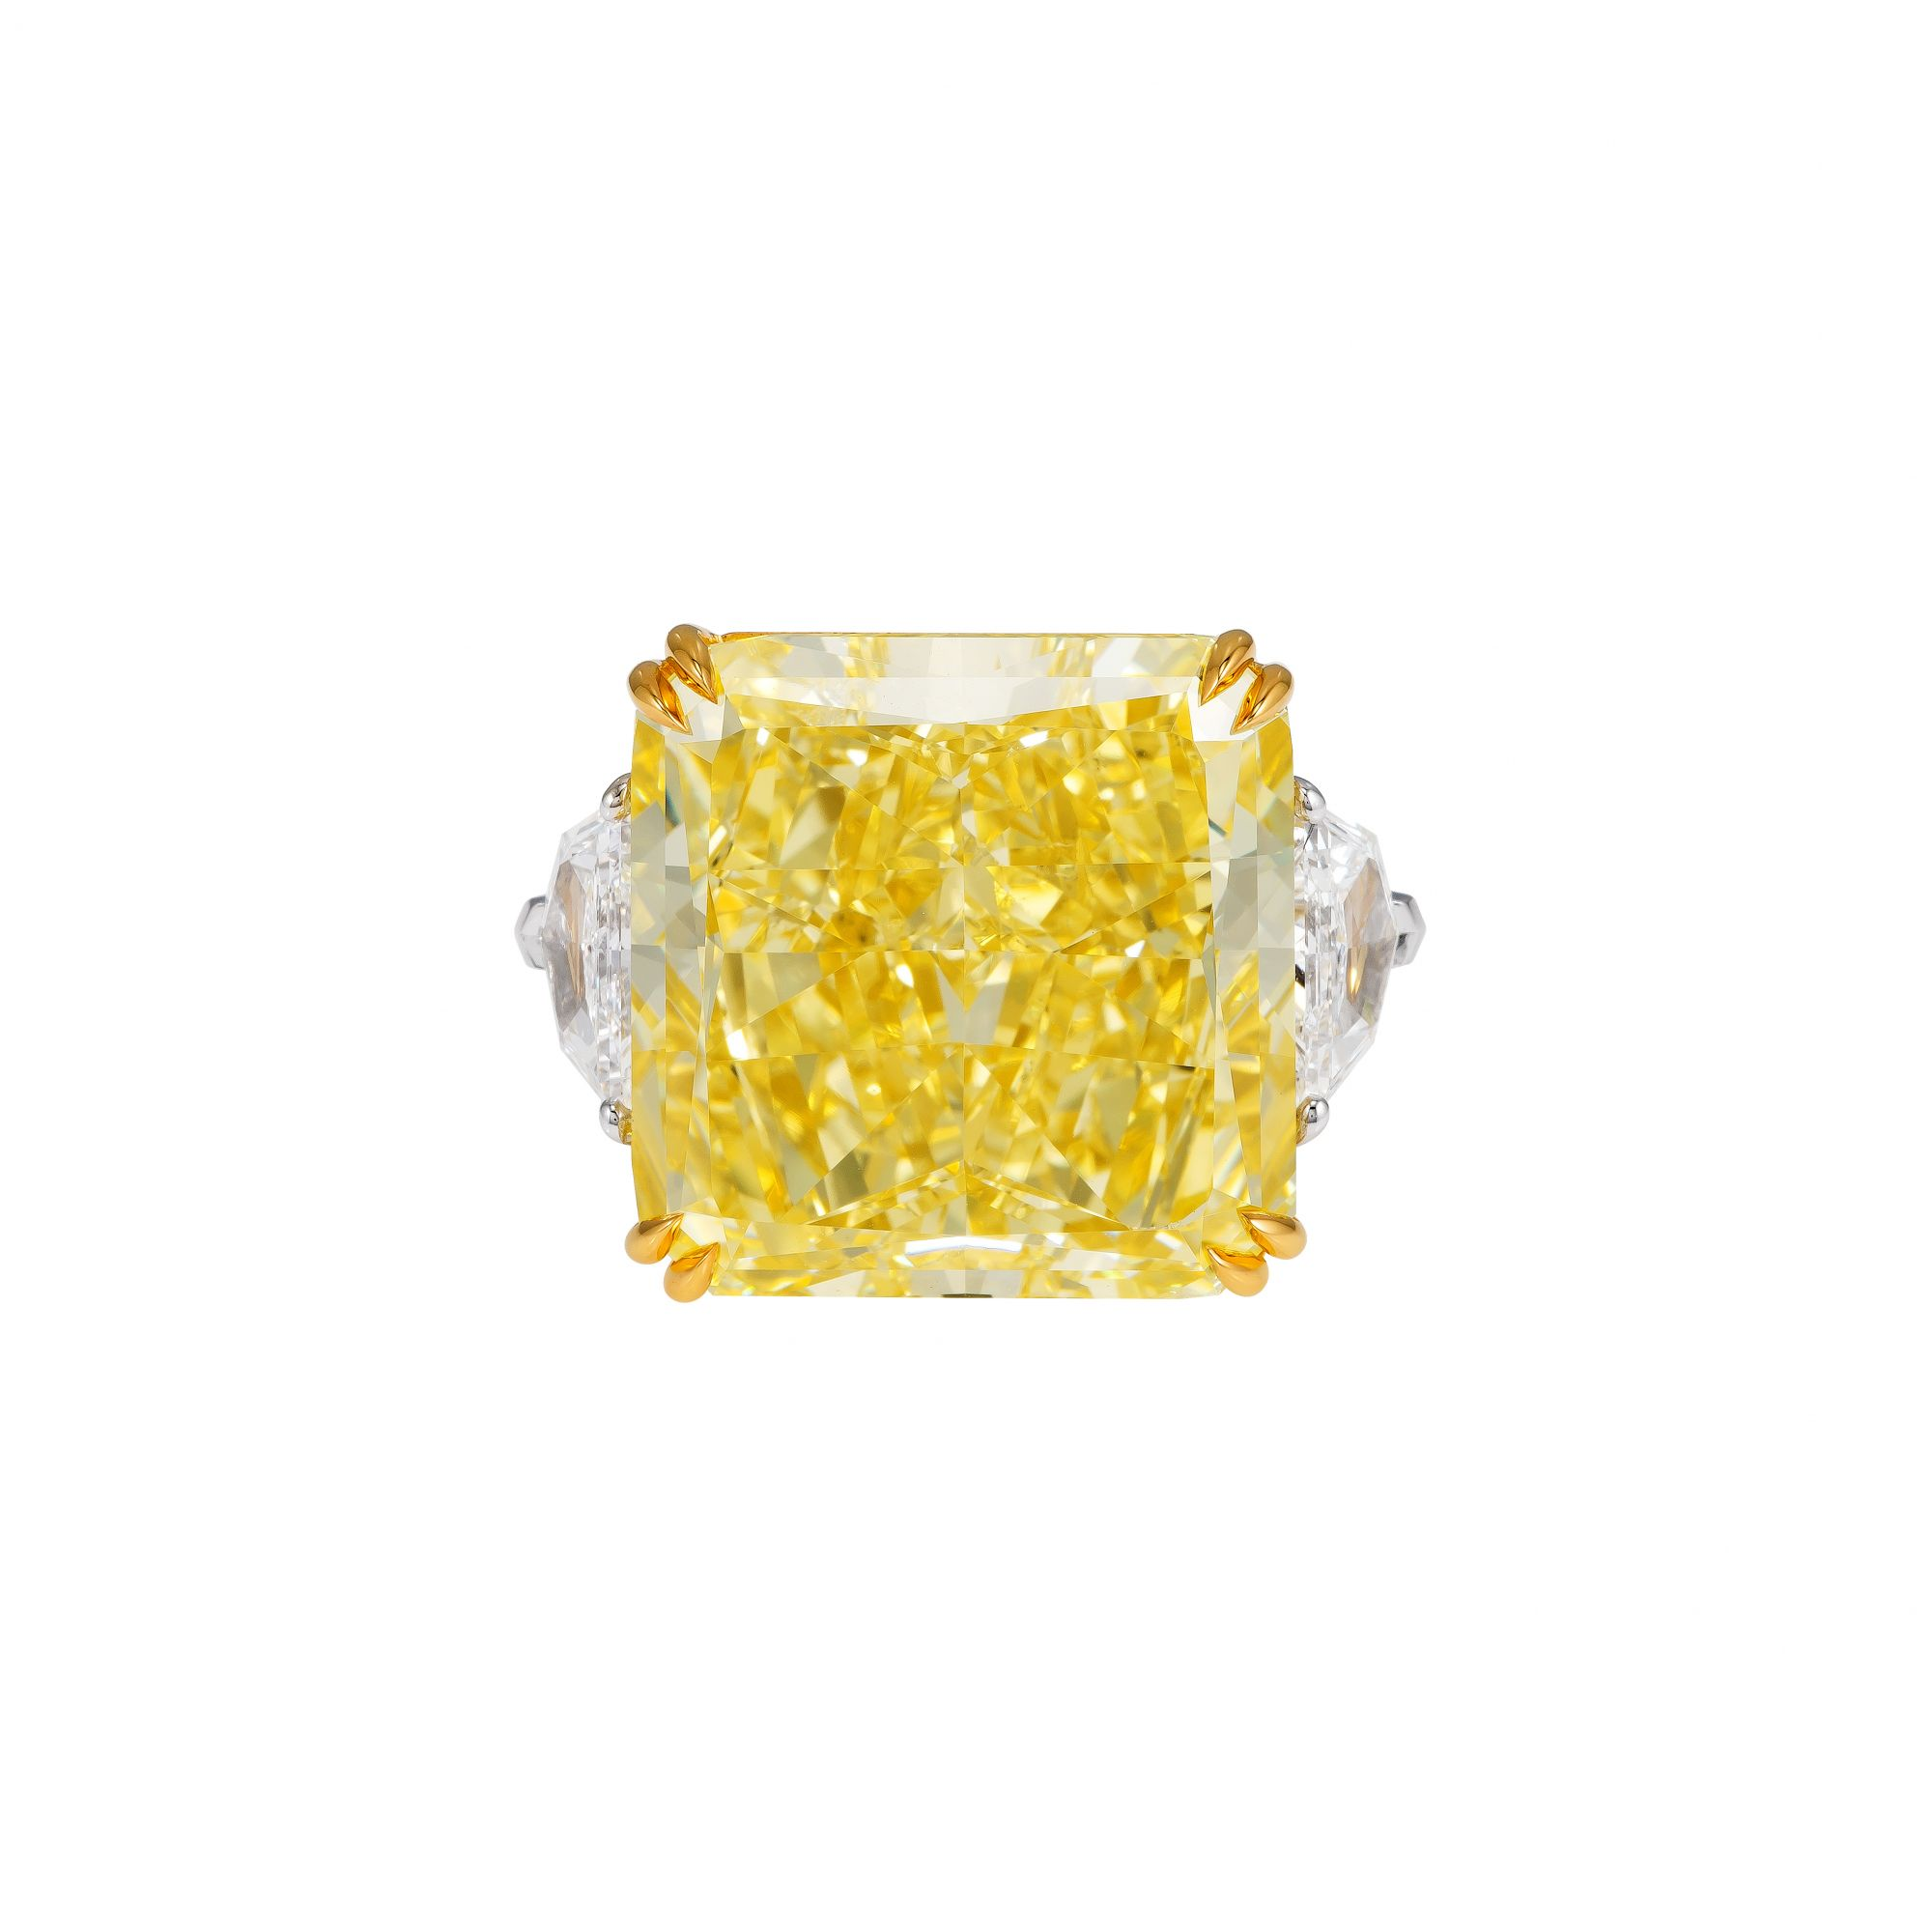 Ring with radiant-cut fancy intense yellow diamond over 40ct